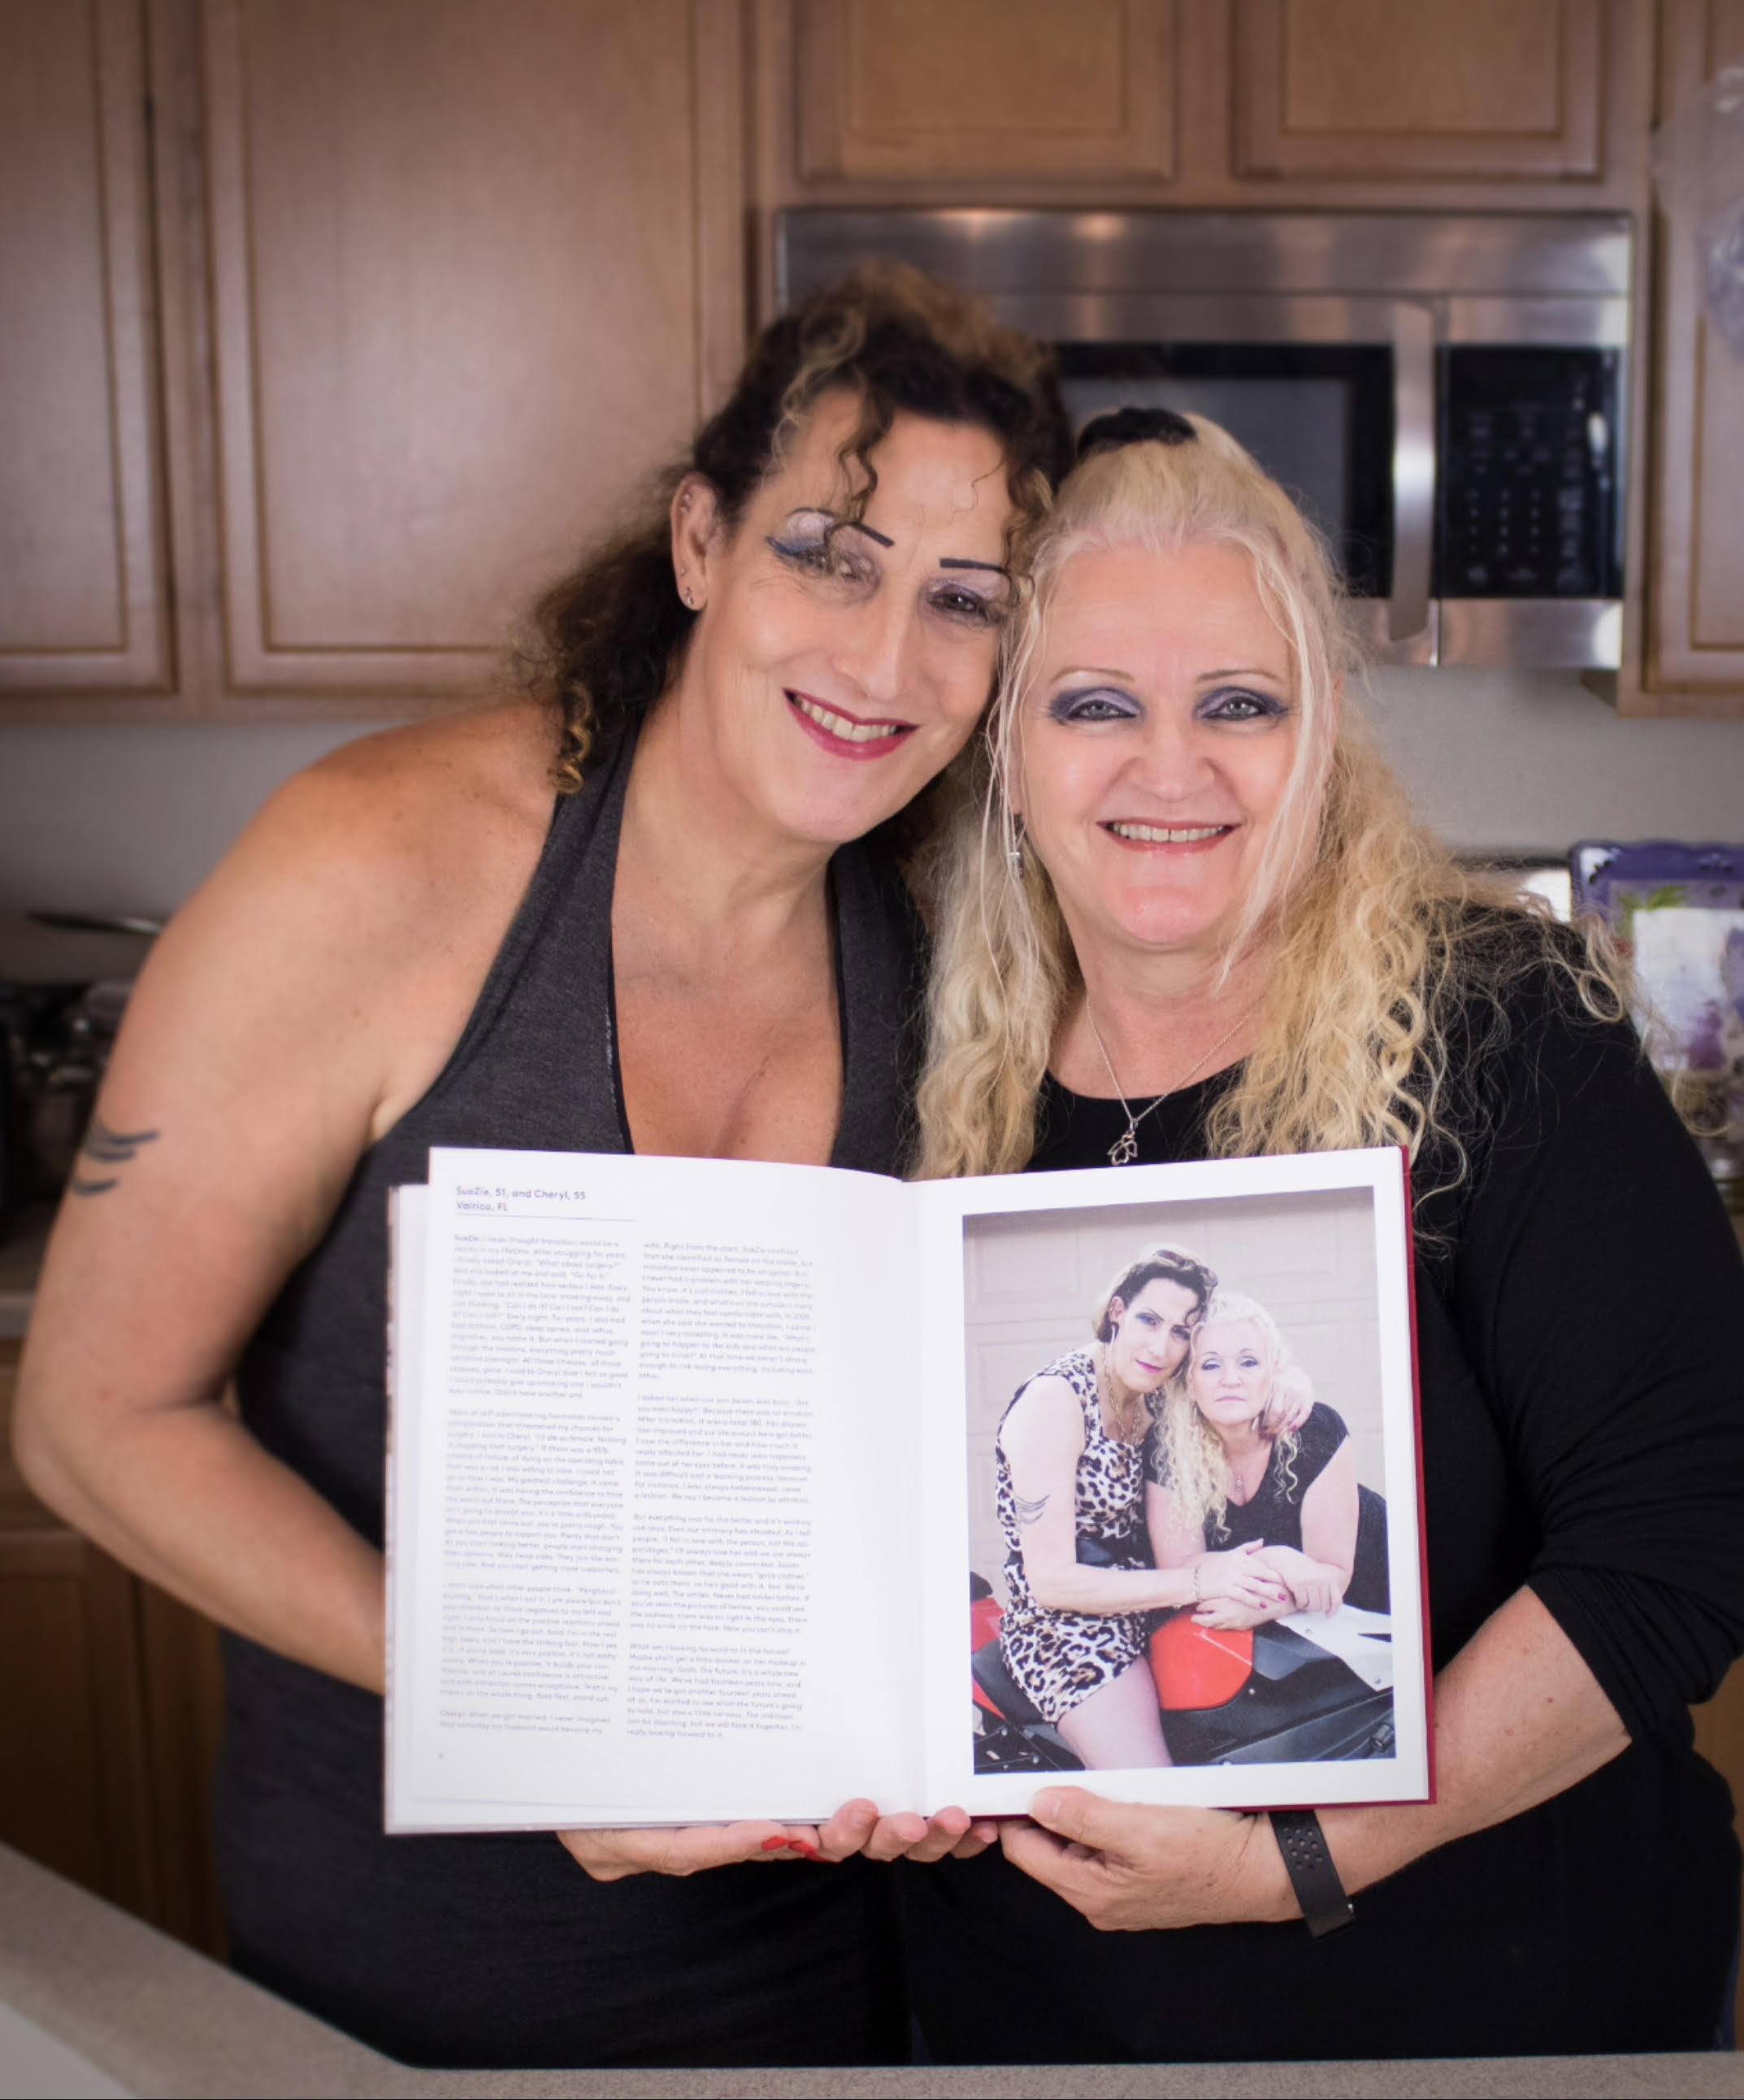 SueZie and Cheryl with their copy of the book